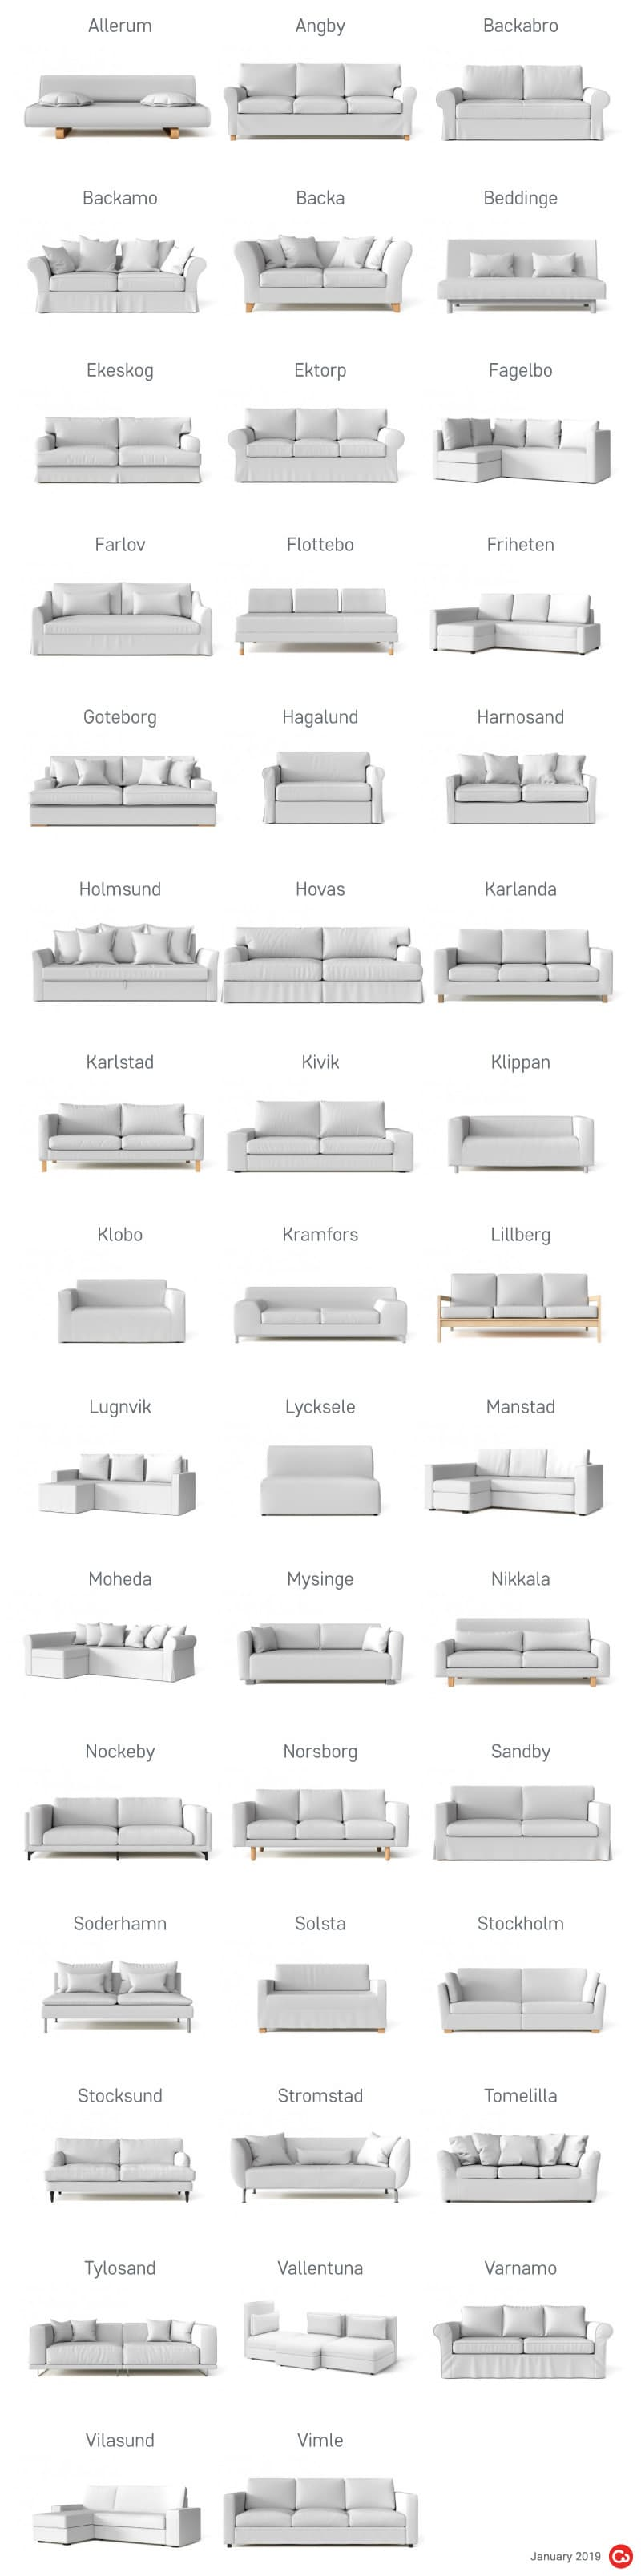 IKEA Discontinued Sofas